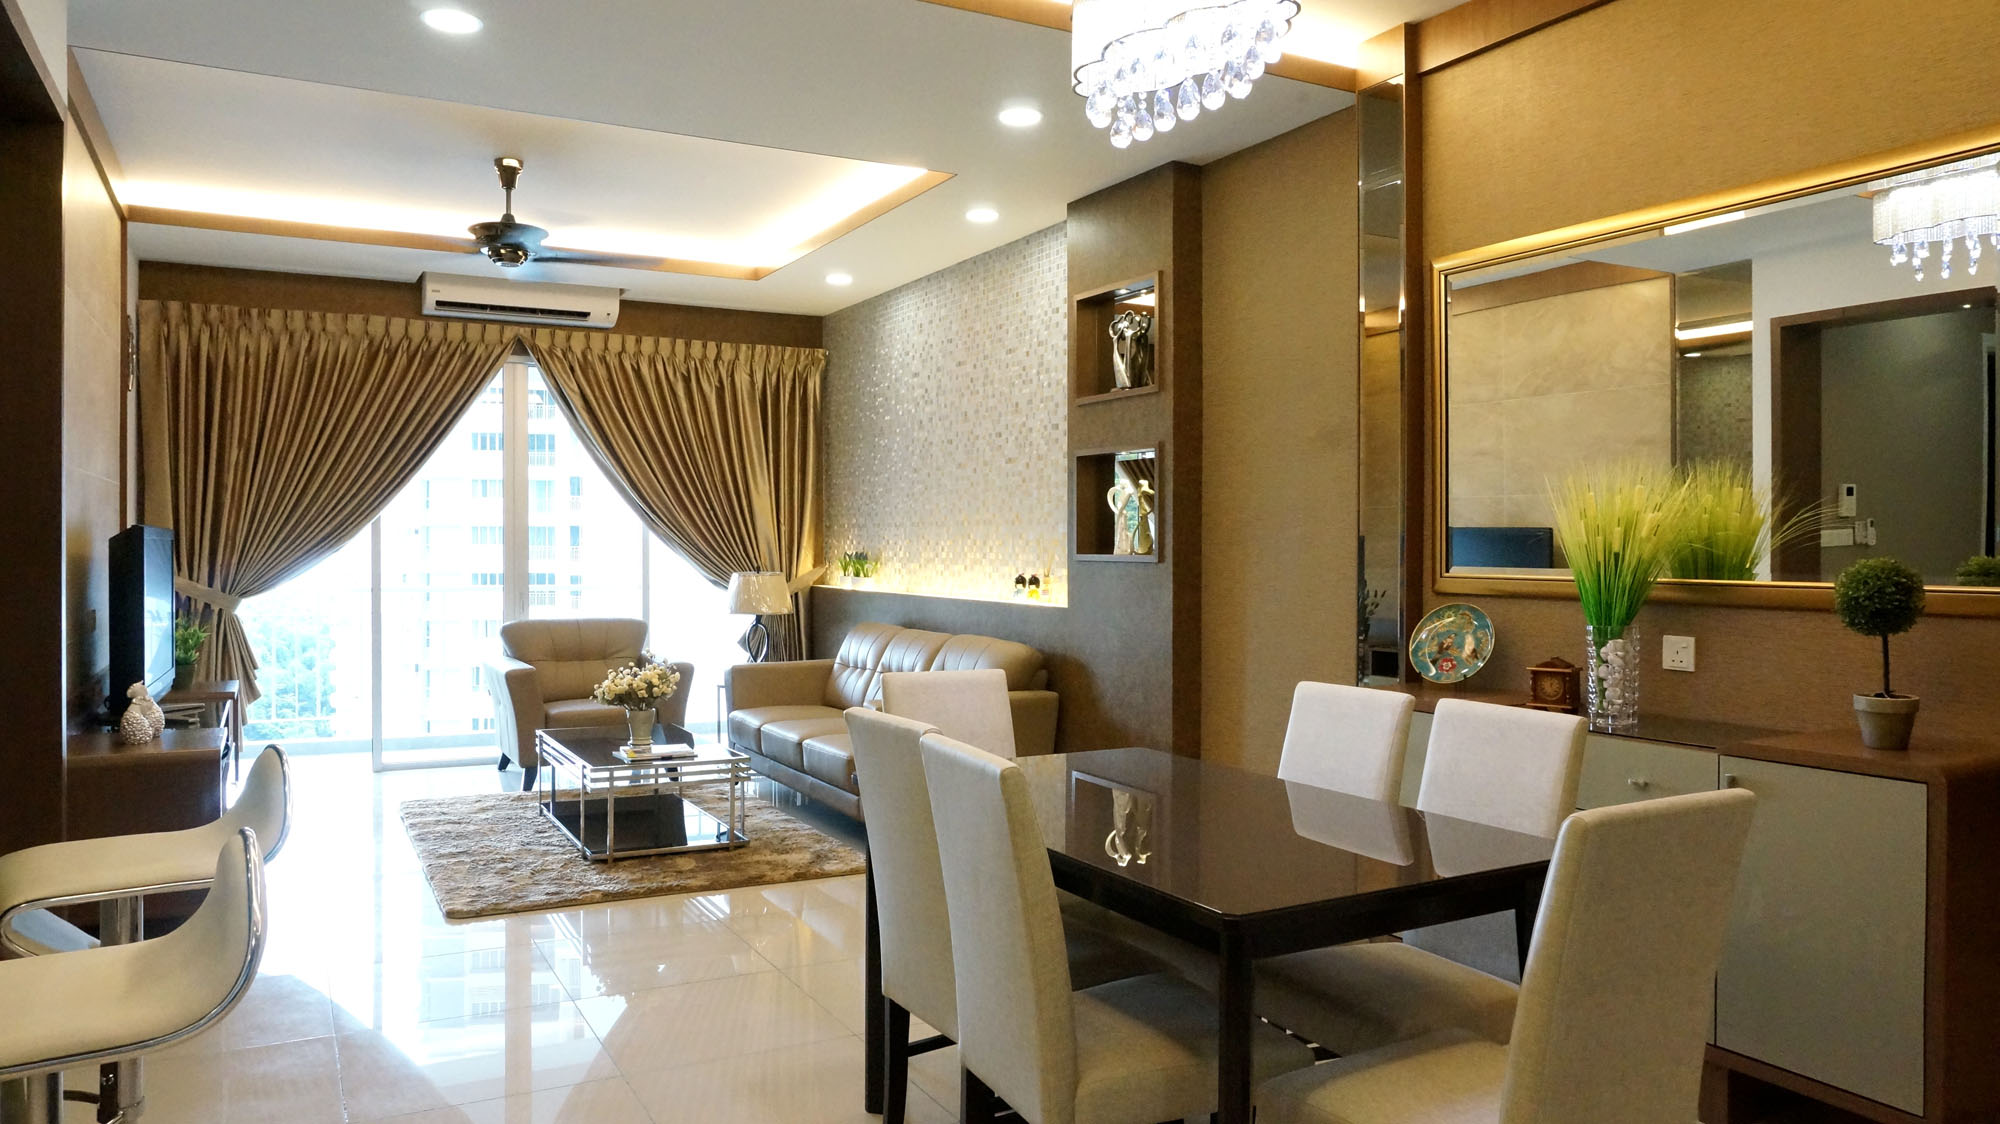 Surin condominium show unit renof gallery for Interior designs for condo units